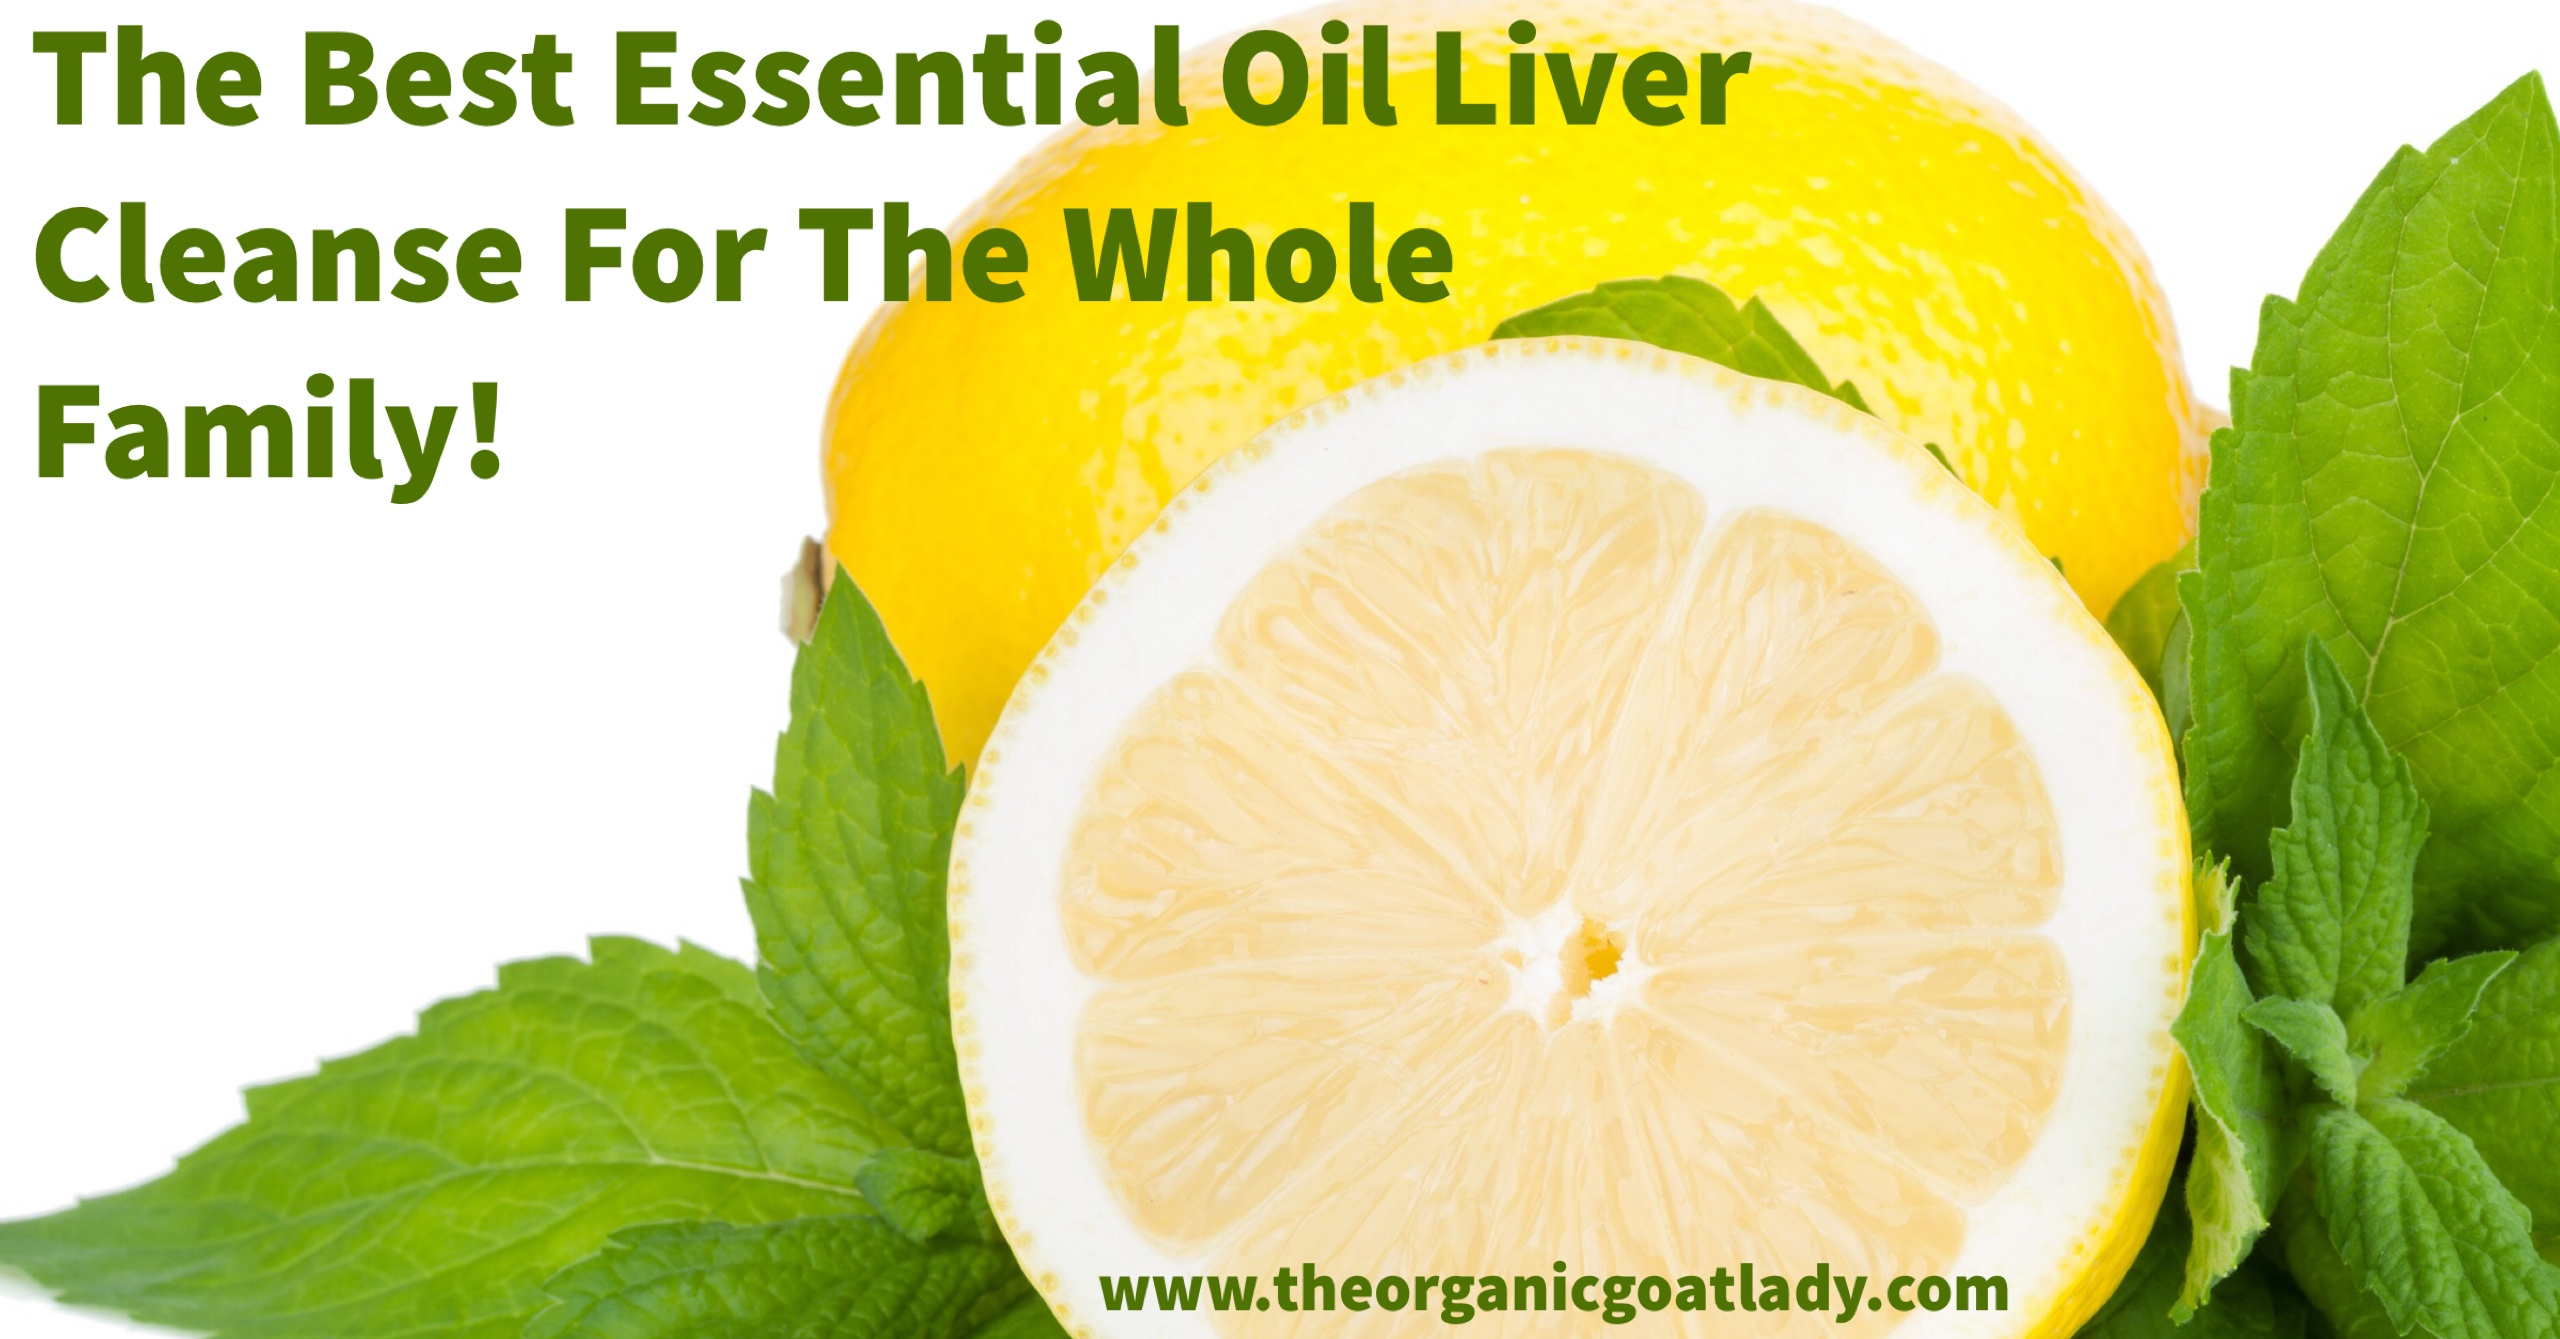 The Best Essential Oil Liver Cleanse For The Whole Family!